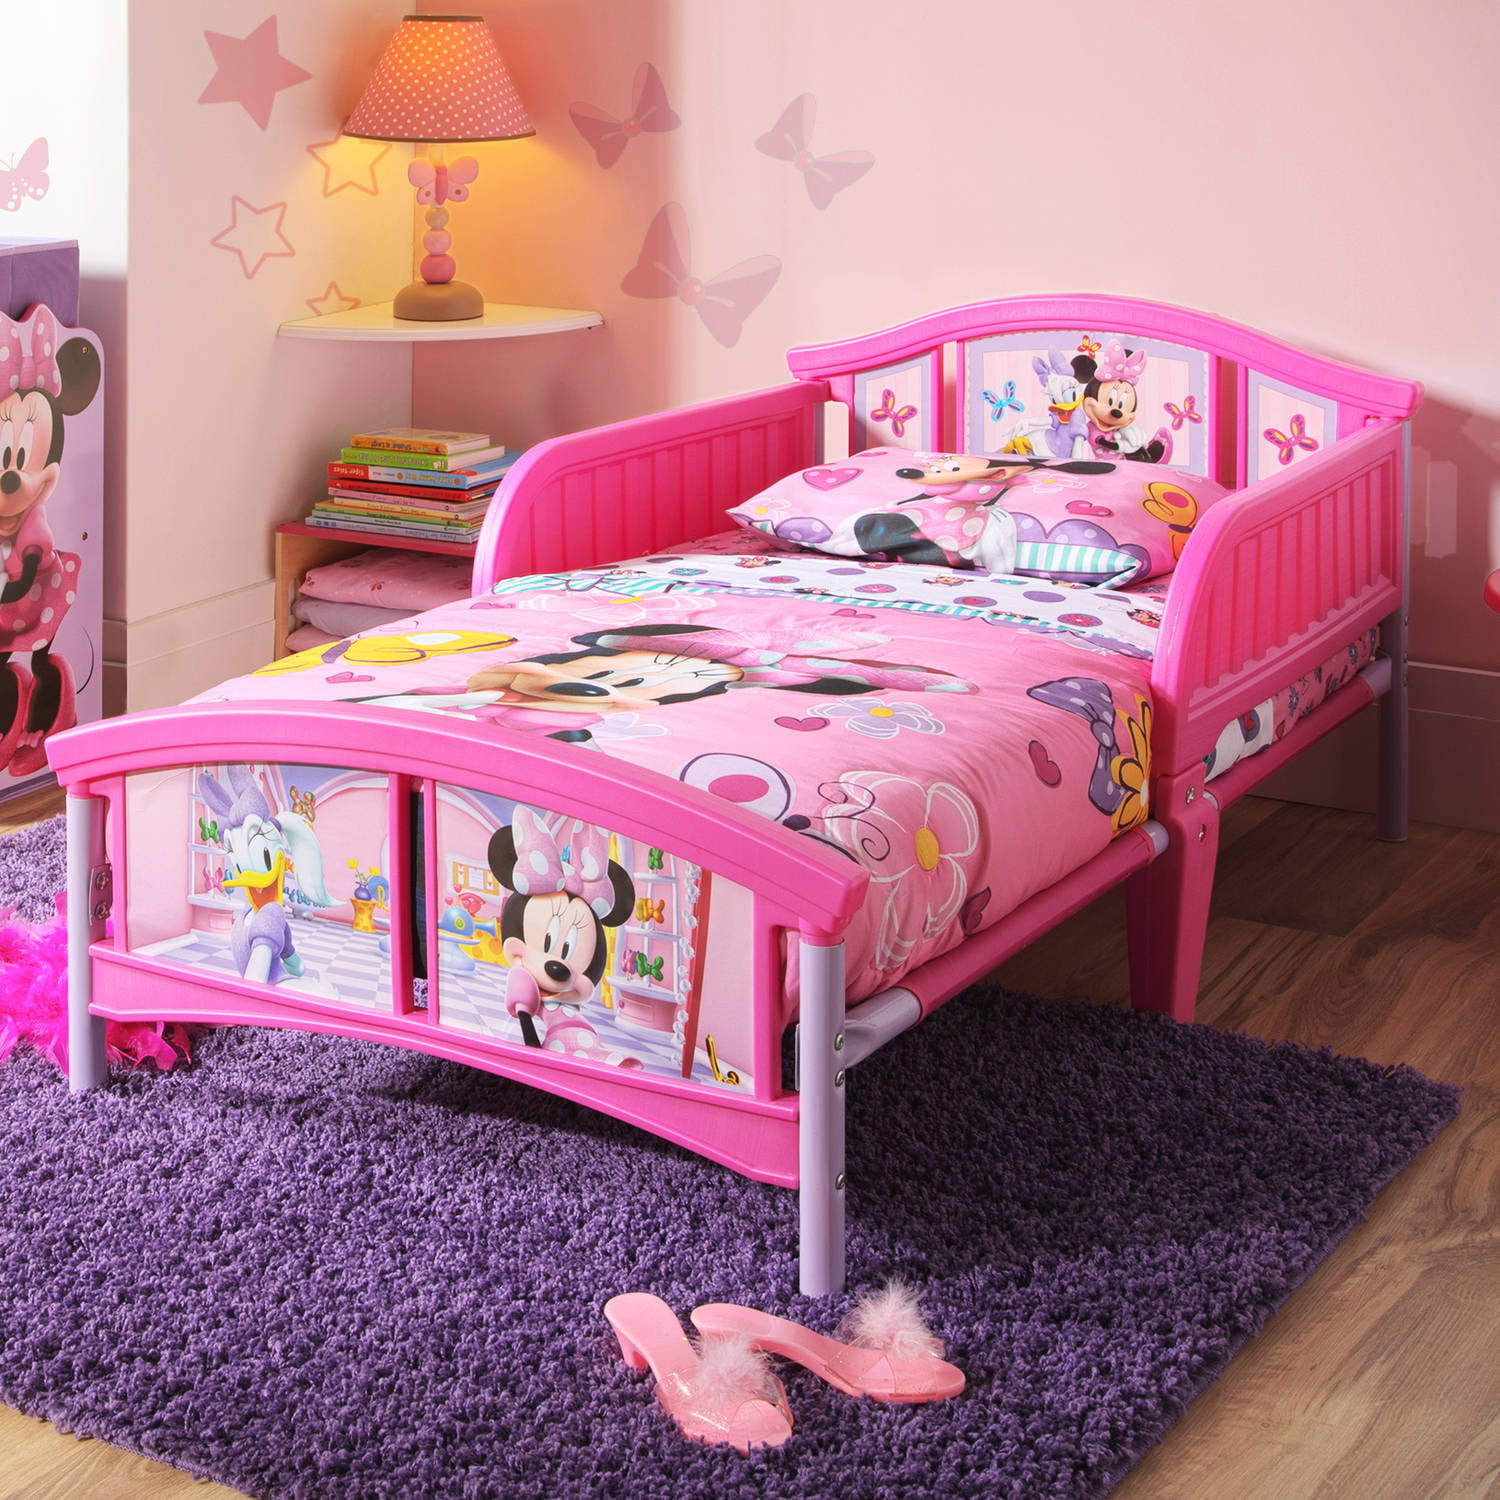 Details About Disney Minnie Mouse Plastic Toddler Bed